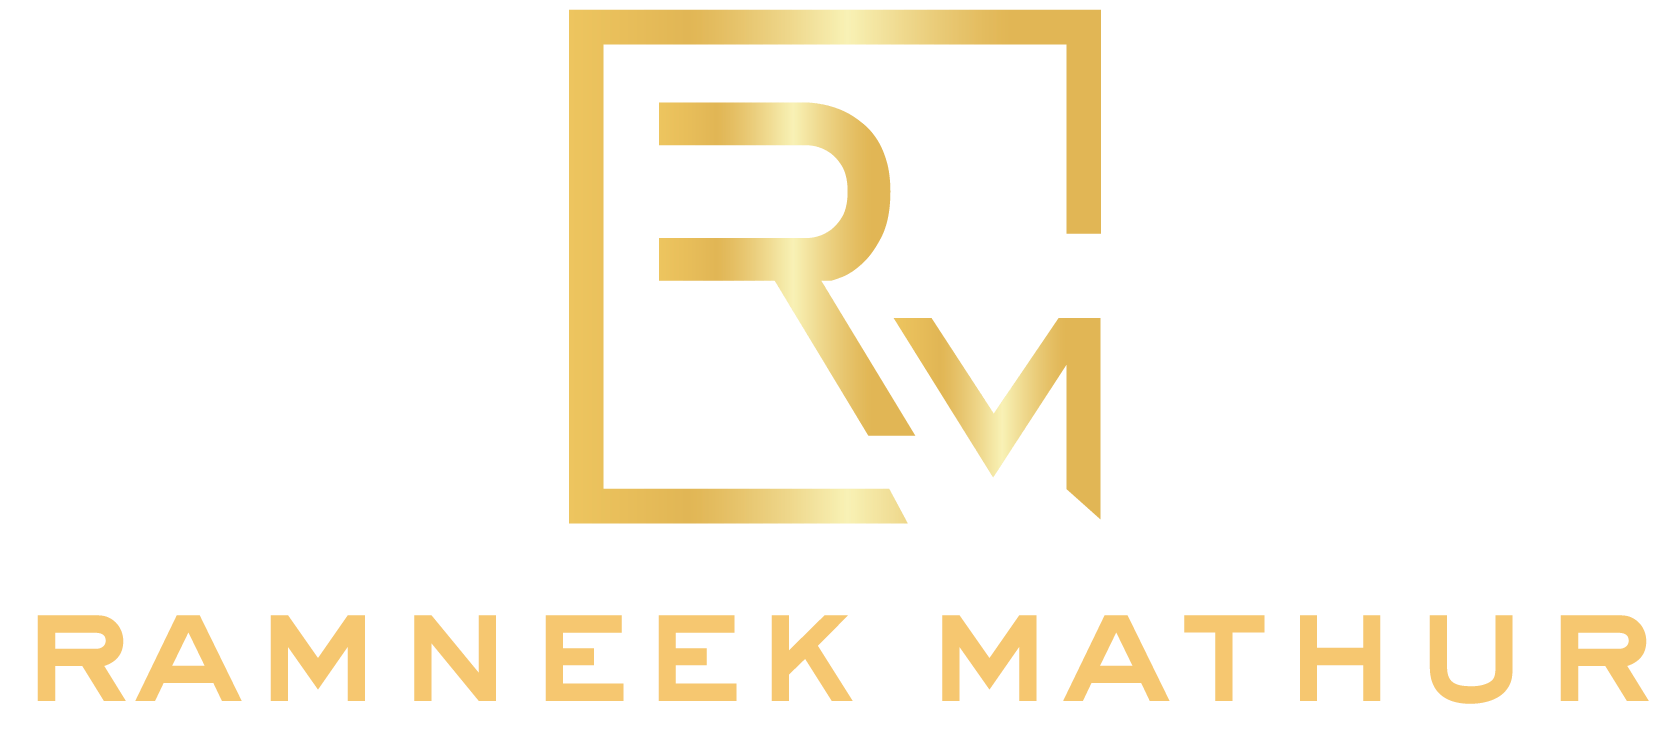 Ramneek Mathur – Advisor & Life Strategist